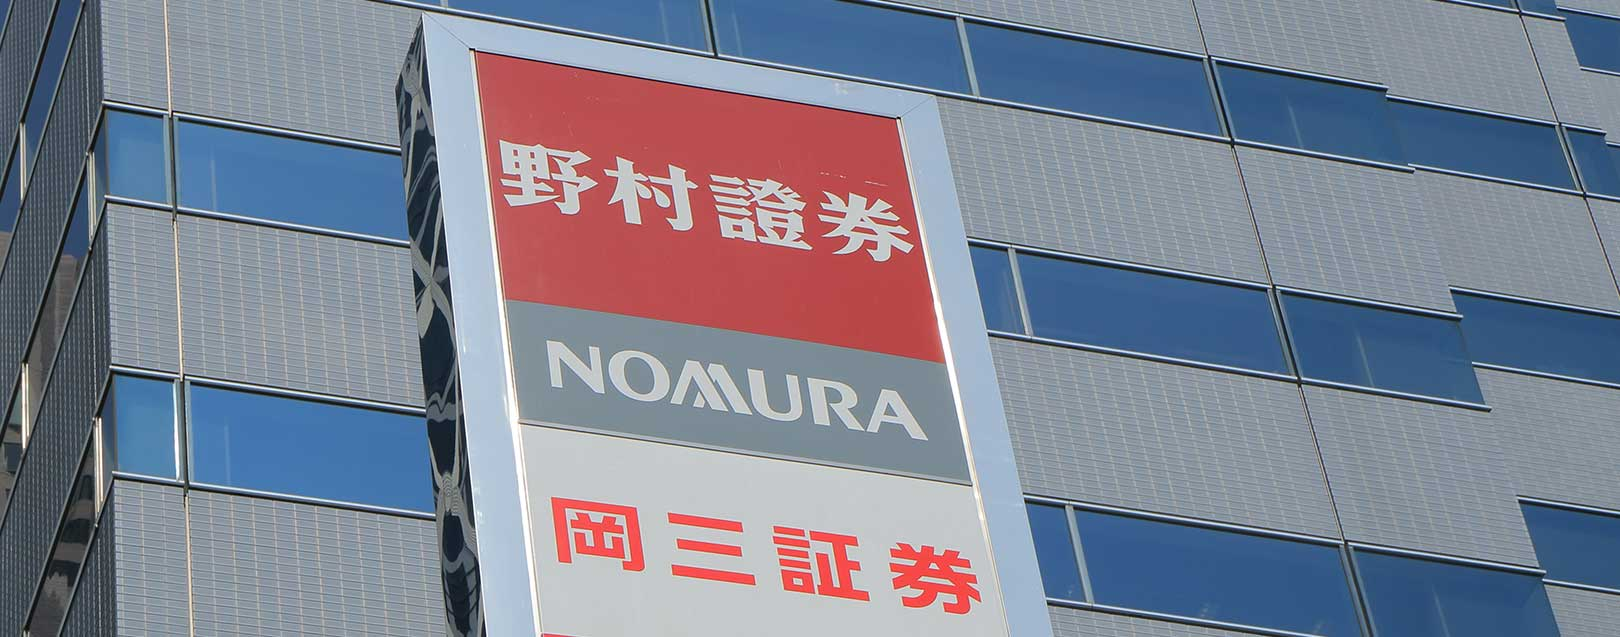 GDP growth likely to slip to 6.7% in the March quarter: Nomura